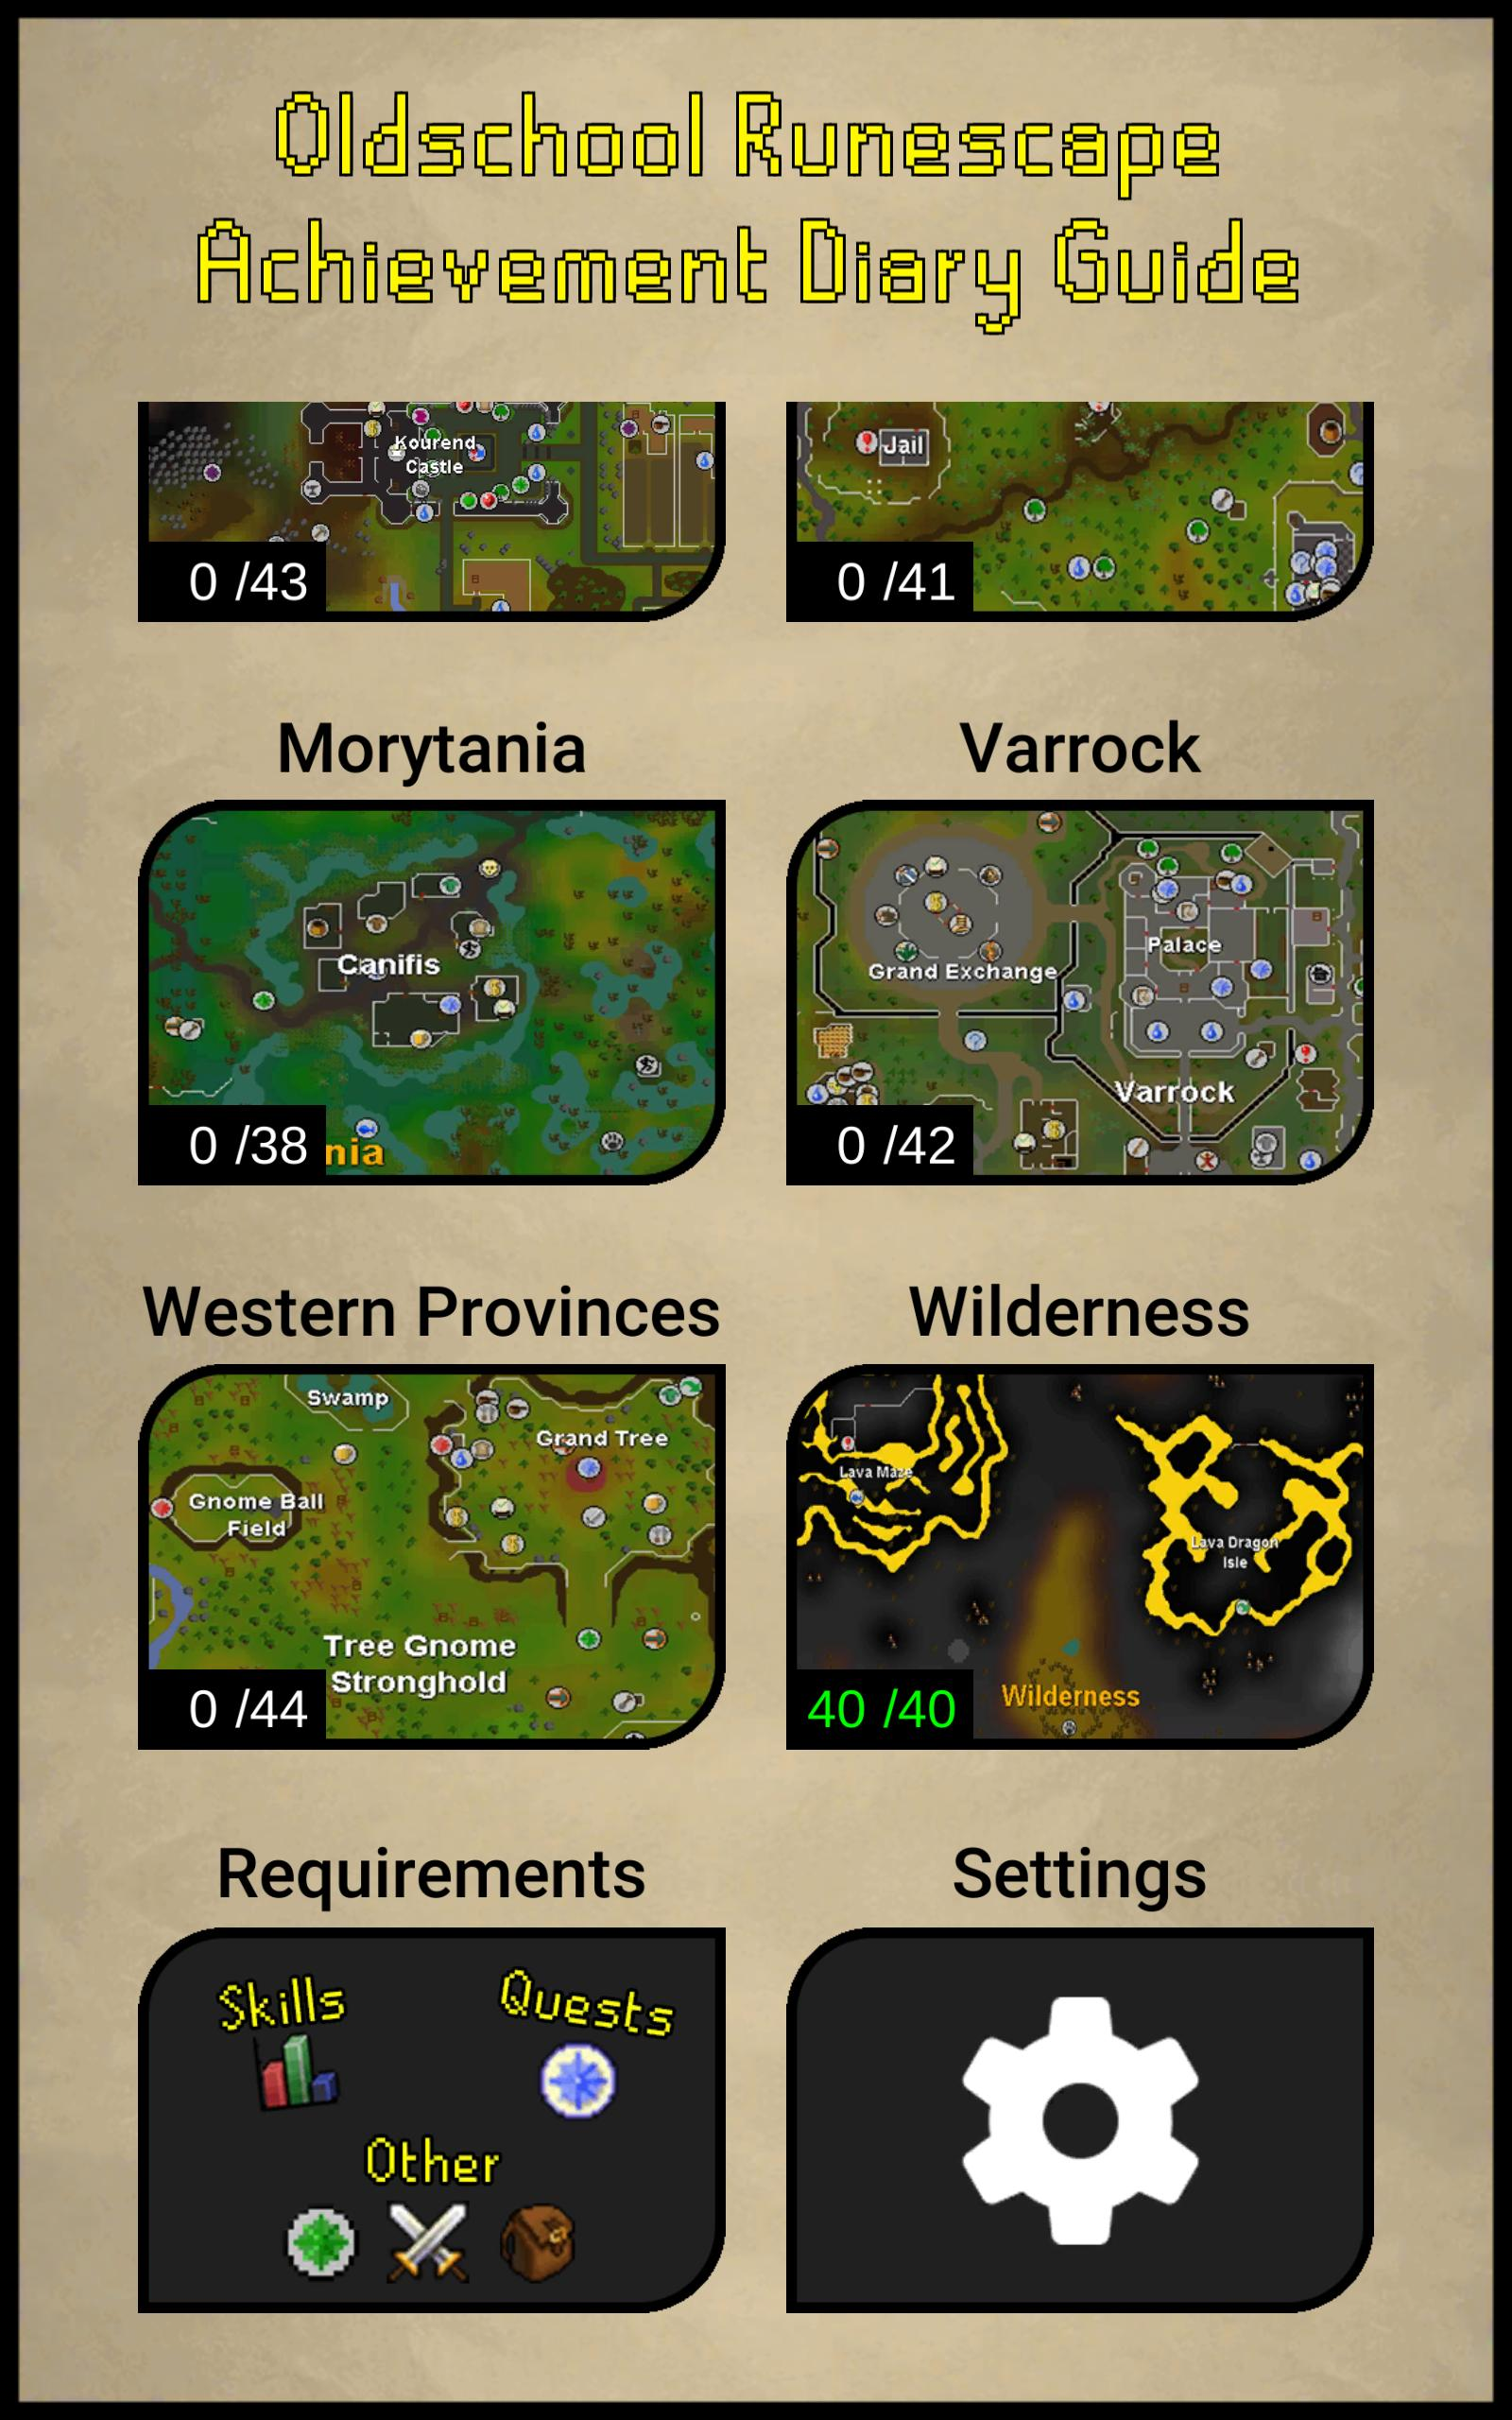 Osrs Achievement Diary Guide For Android Apk Download Elise's location to complete all of the tasks, players will need the stats shown in the infobox to the right. osrs achievement diary guide for